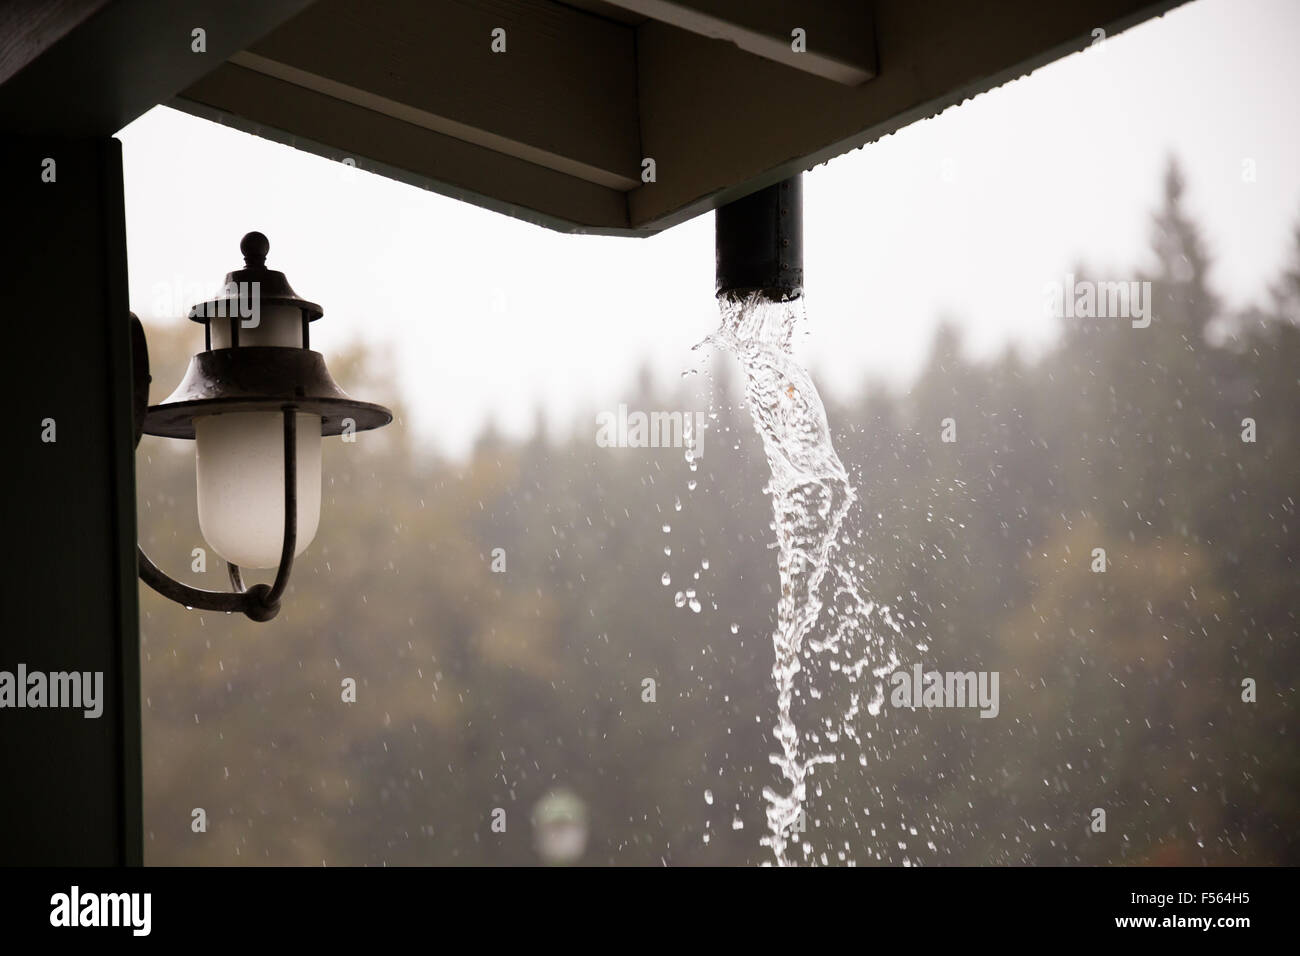 Rain comes down hard in this storm in Oregon, typical weather in the Fall or Autumn. - Stock Image